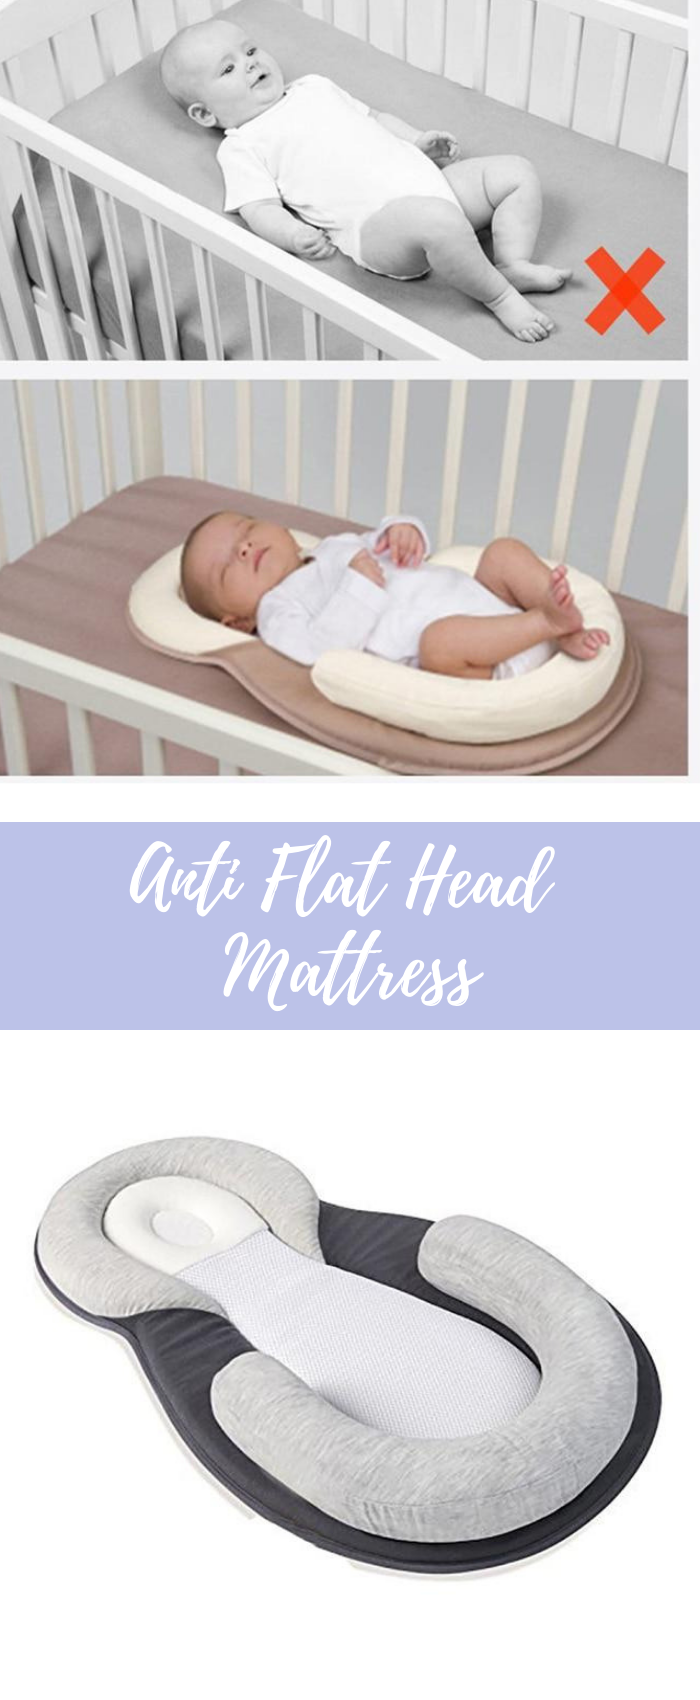 Anti Flat Head Baby Mattress Positioning Baby Pillow Ultimate Comfort Soft And Breathable Fabric Allow For P Baby Mattress Flat Head Baby New Baby Products